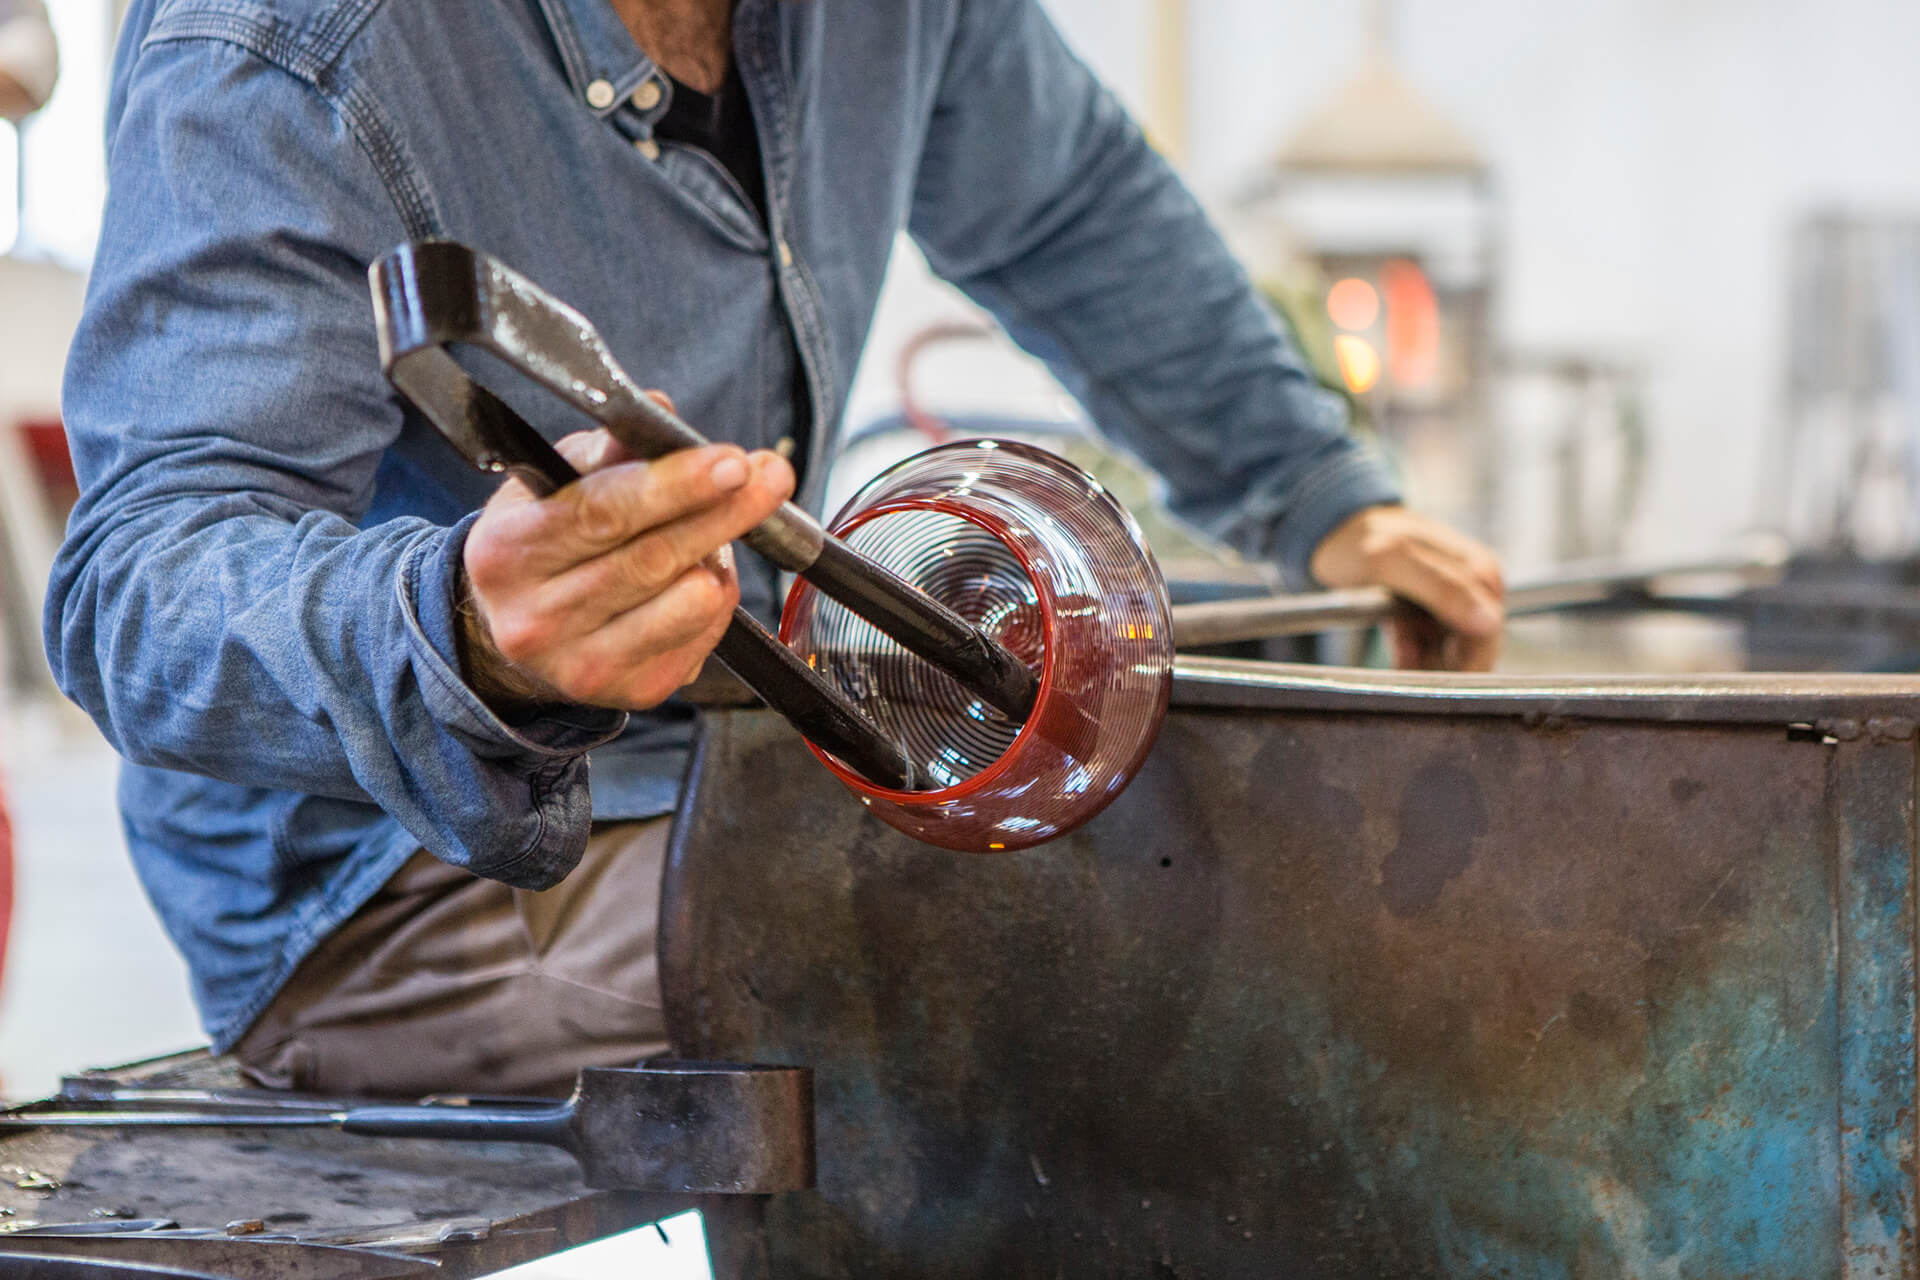 The Venice Glass Week celebrates, support and promotes the art of glassmaking| Venice reopens post COVID-19 lockdown | STIRworld